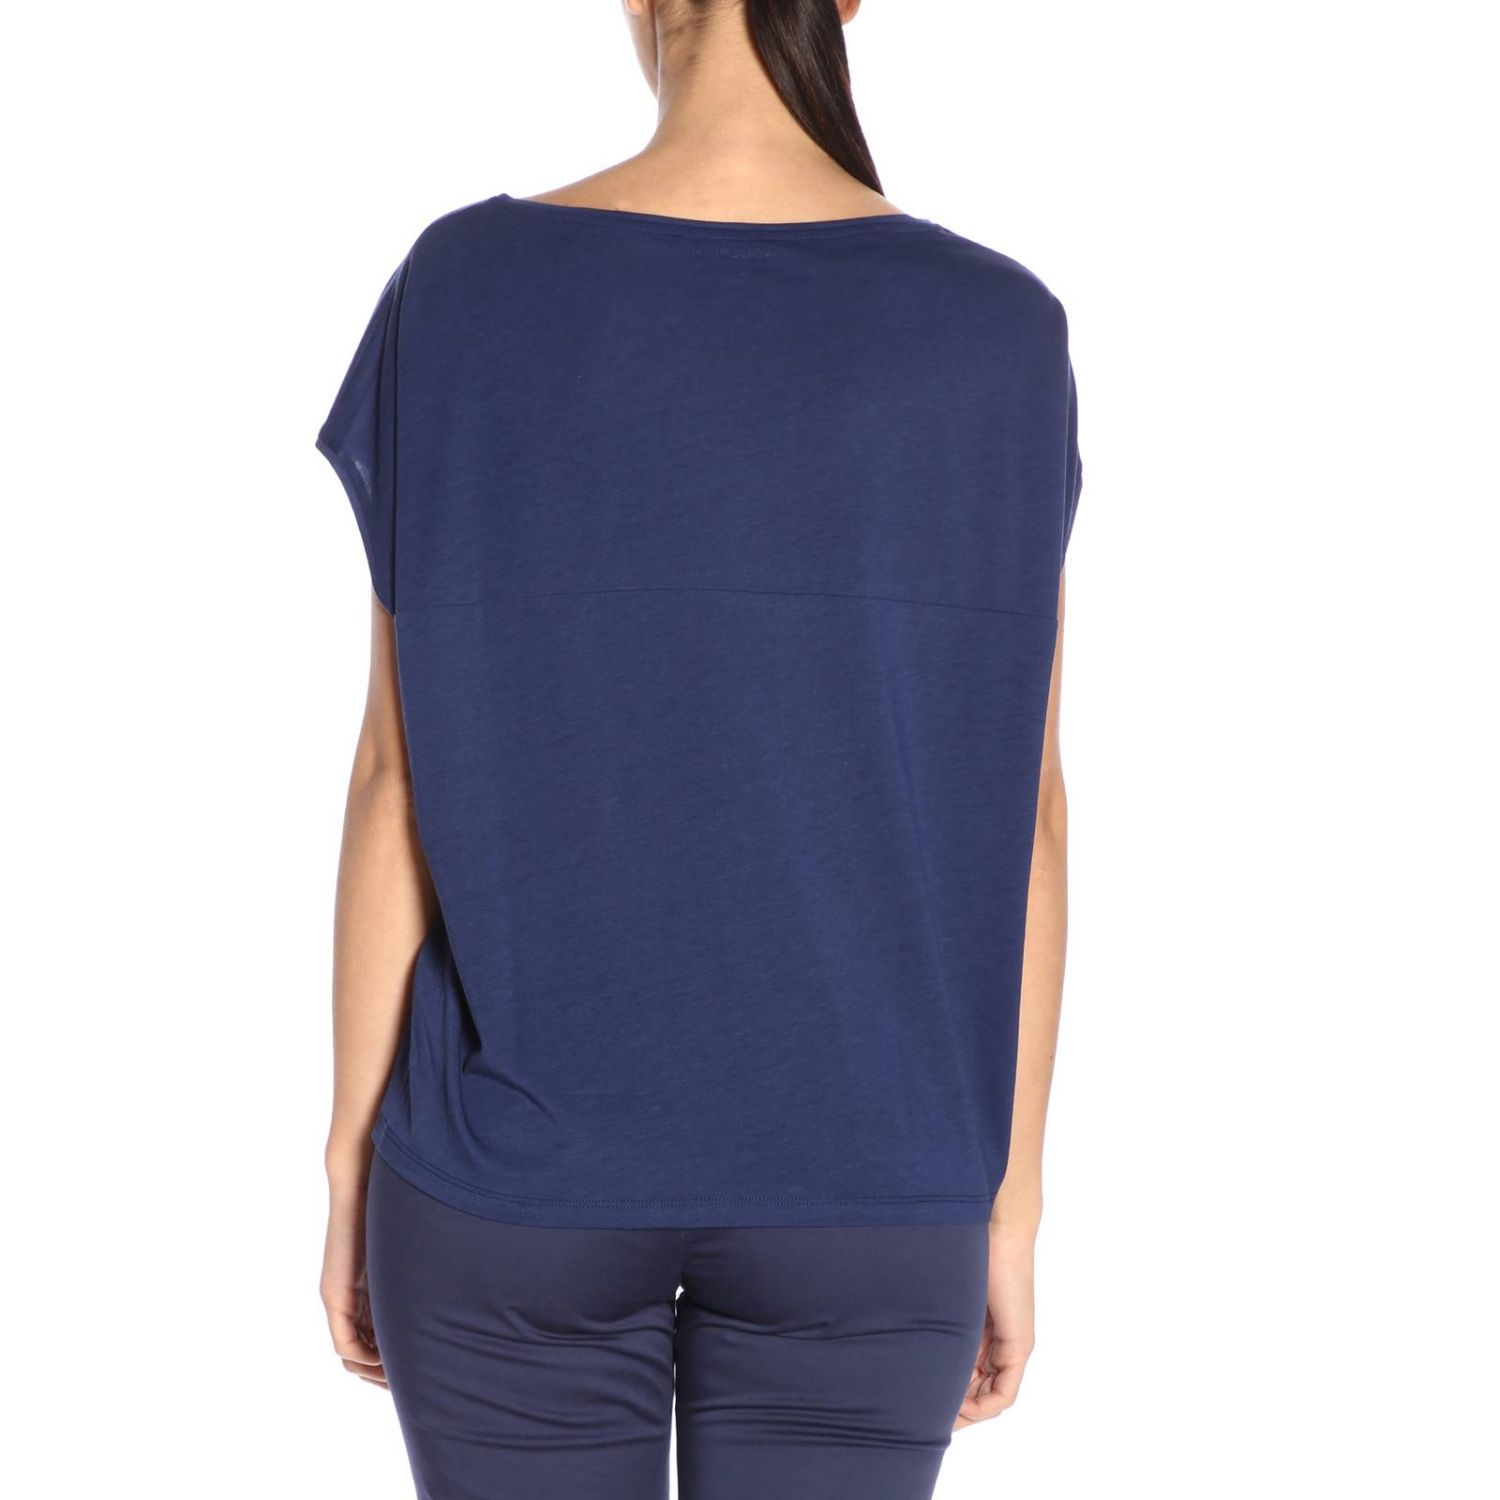 Camiseta mujer Woolrich azul oscuro 3